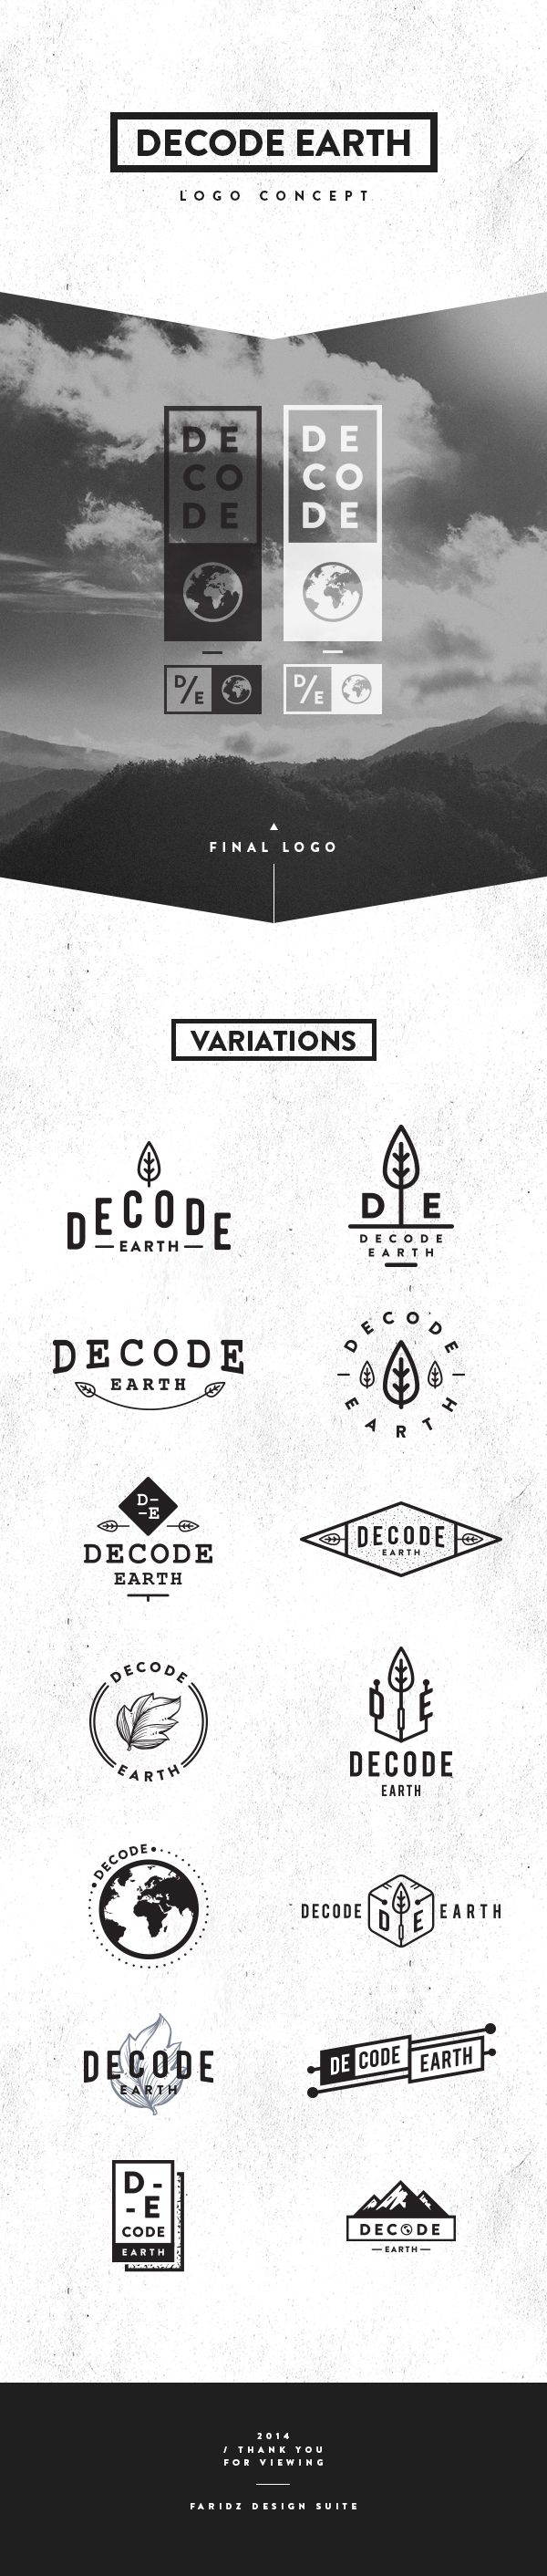 Decode Earth - Logo - Pitch by Faridz Design Suite, via Behance